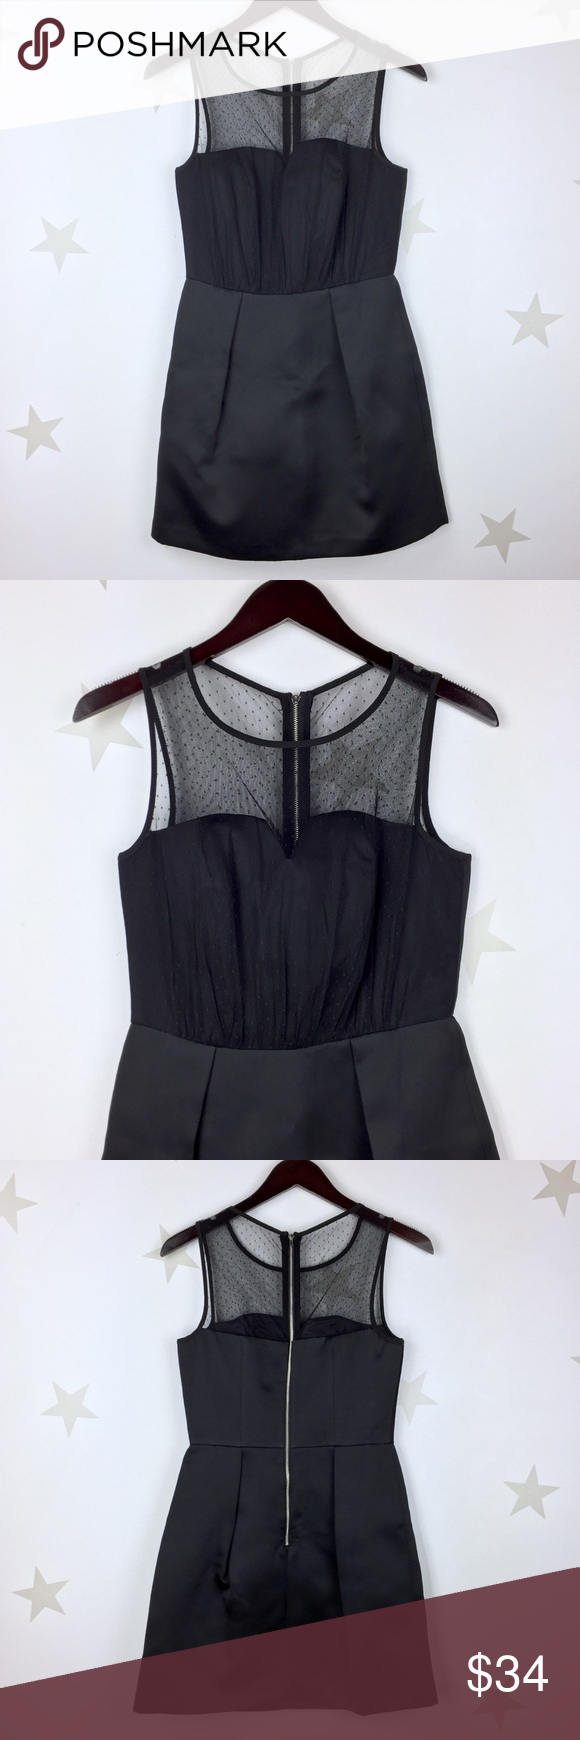 New look mesh top bodice dress black flat lay bodice and overlay